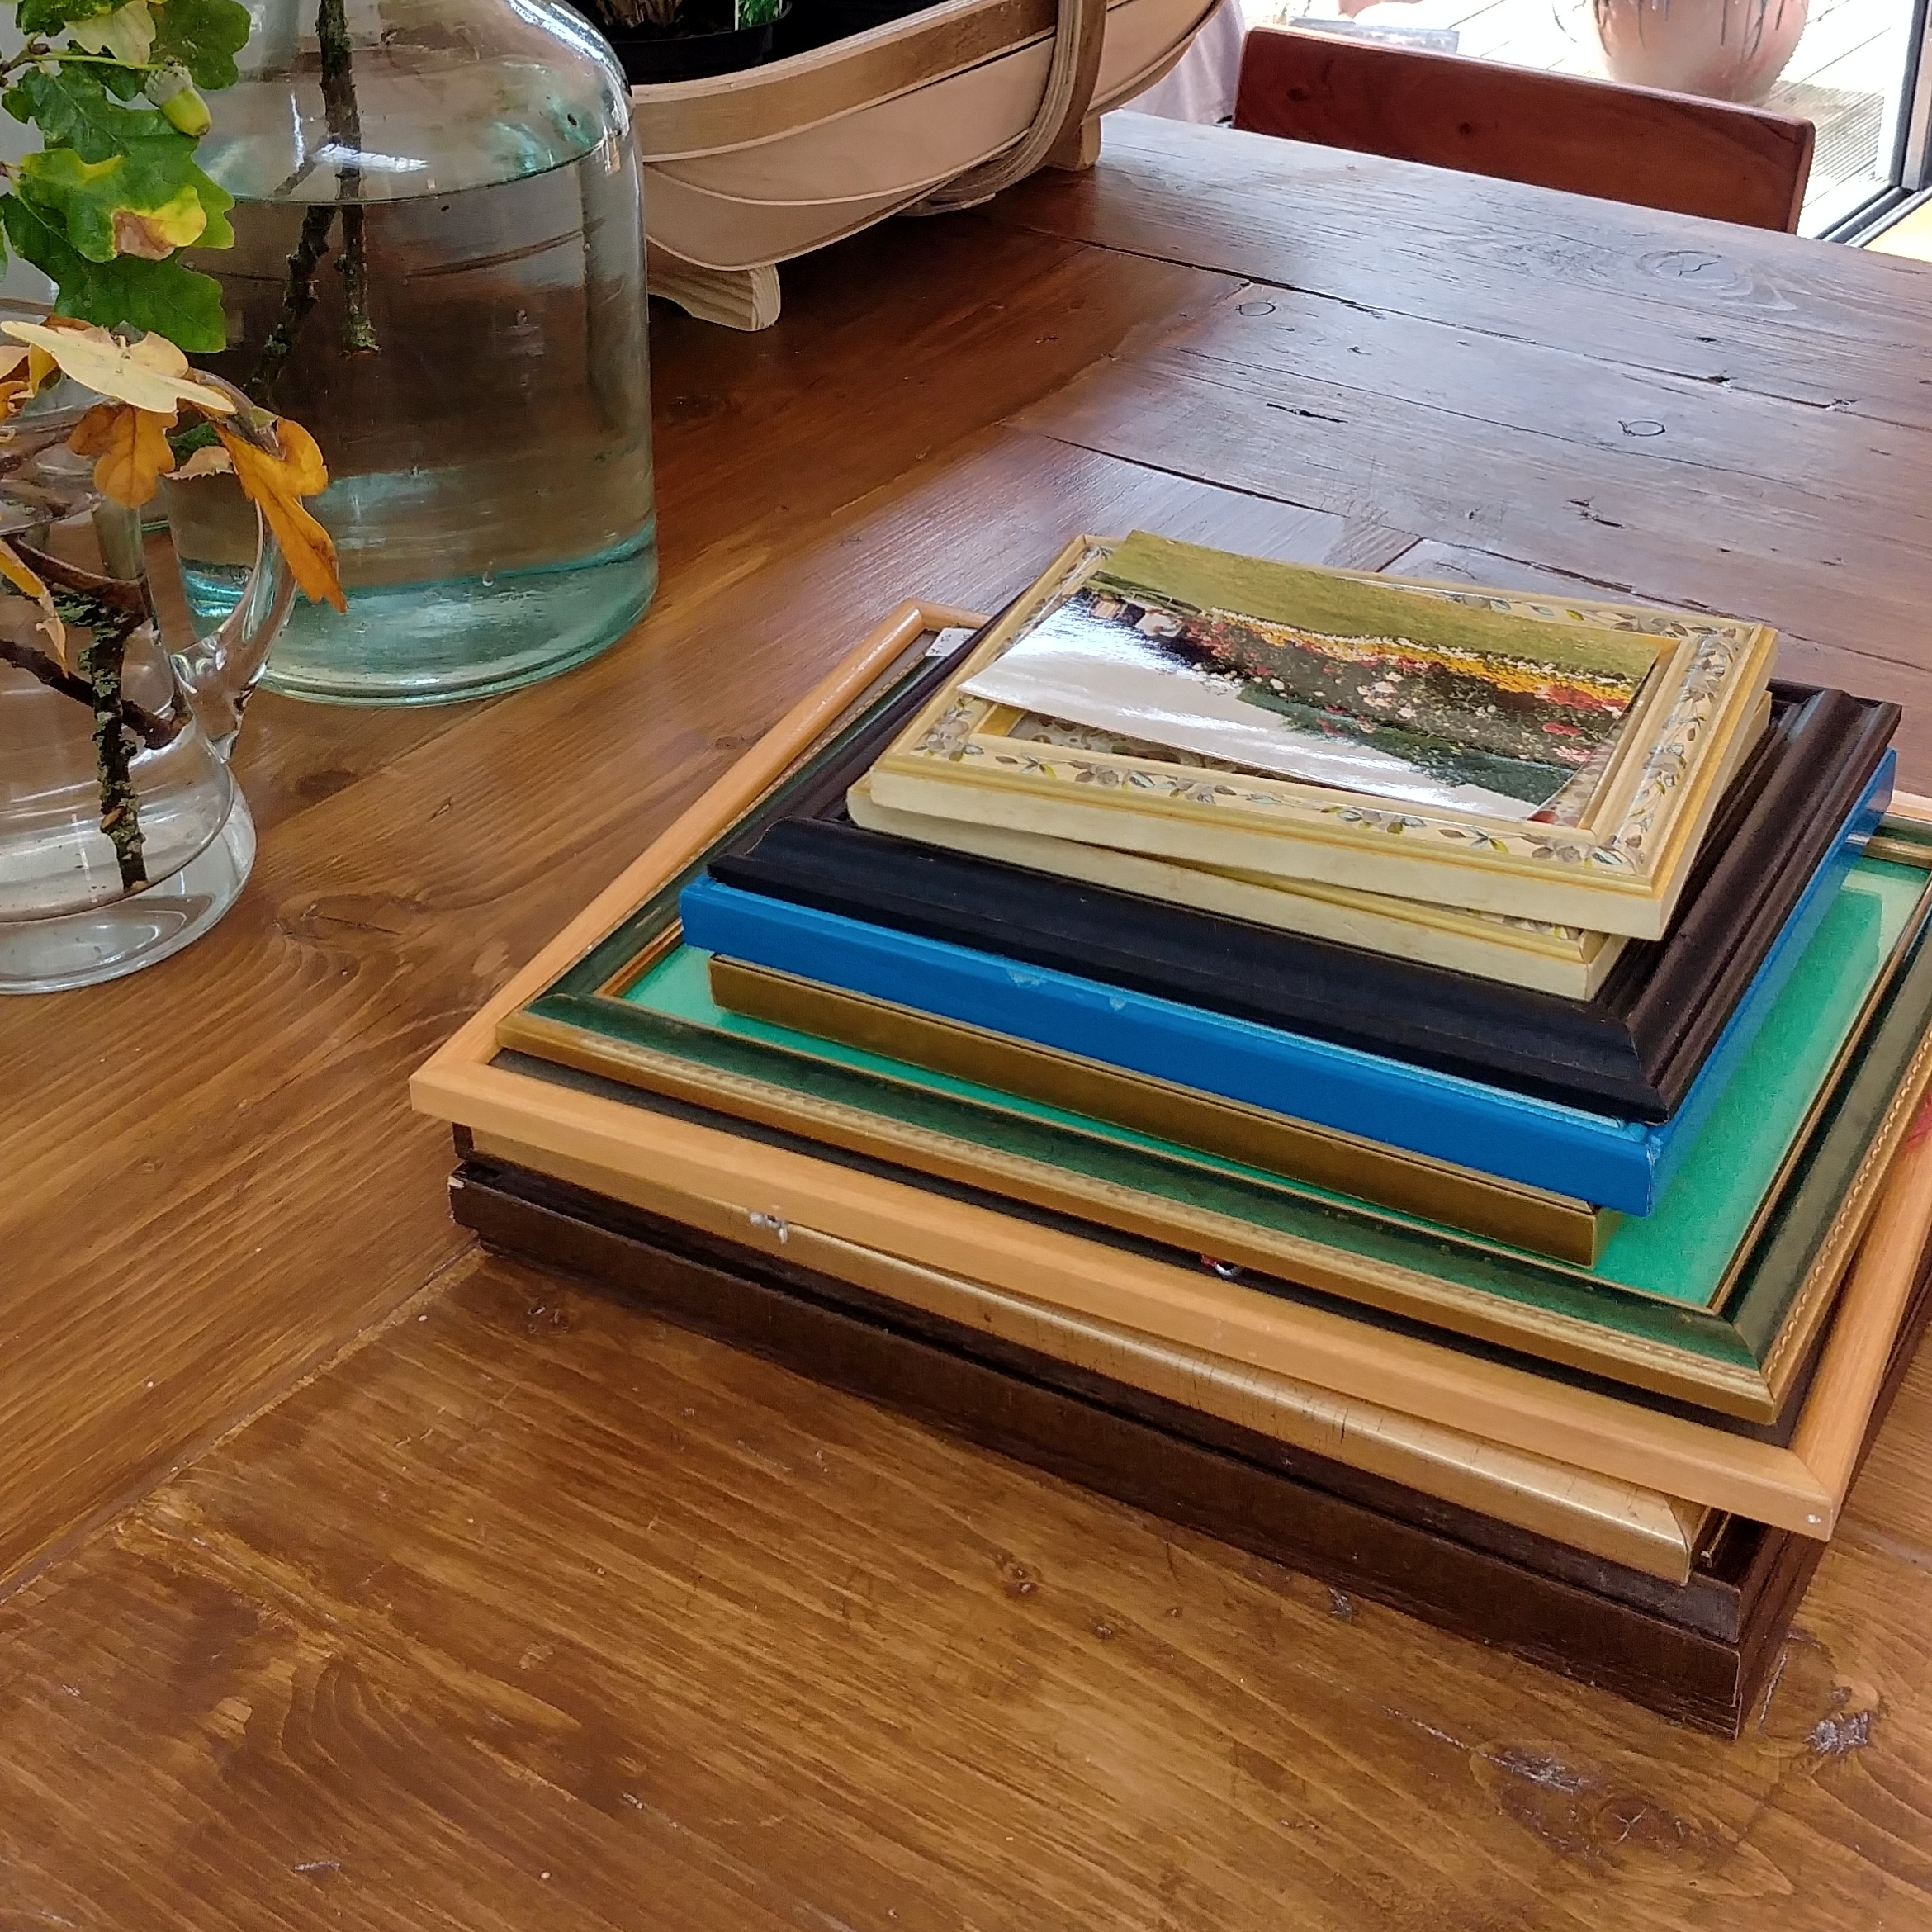 This stack of frames sat on the island for about two months before I got round to using them.